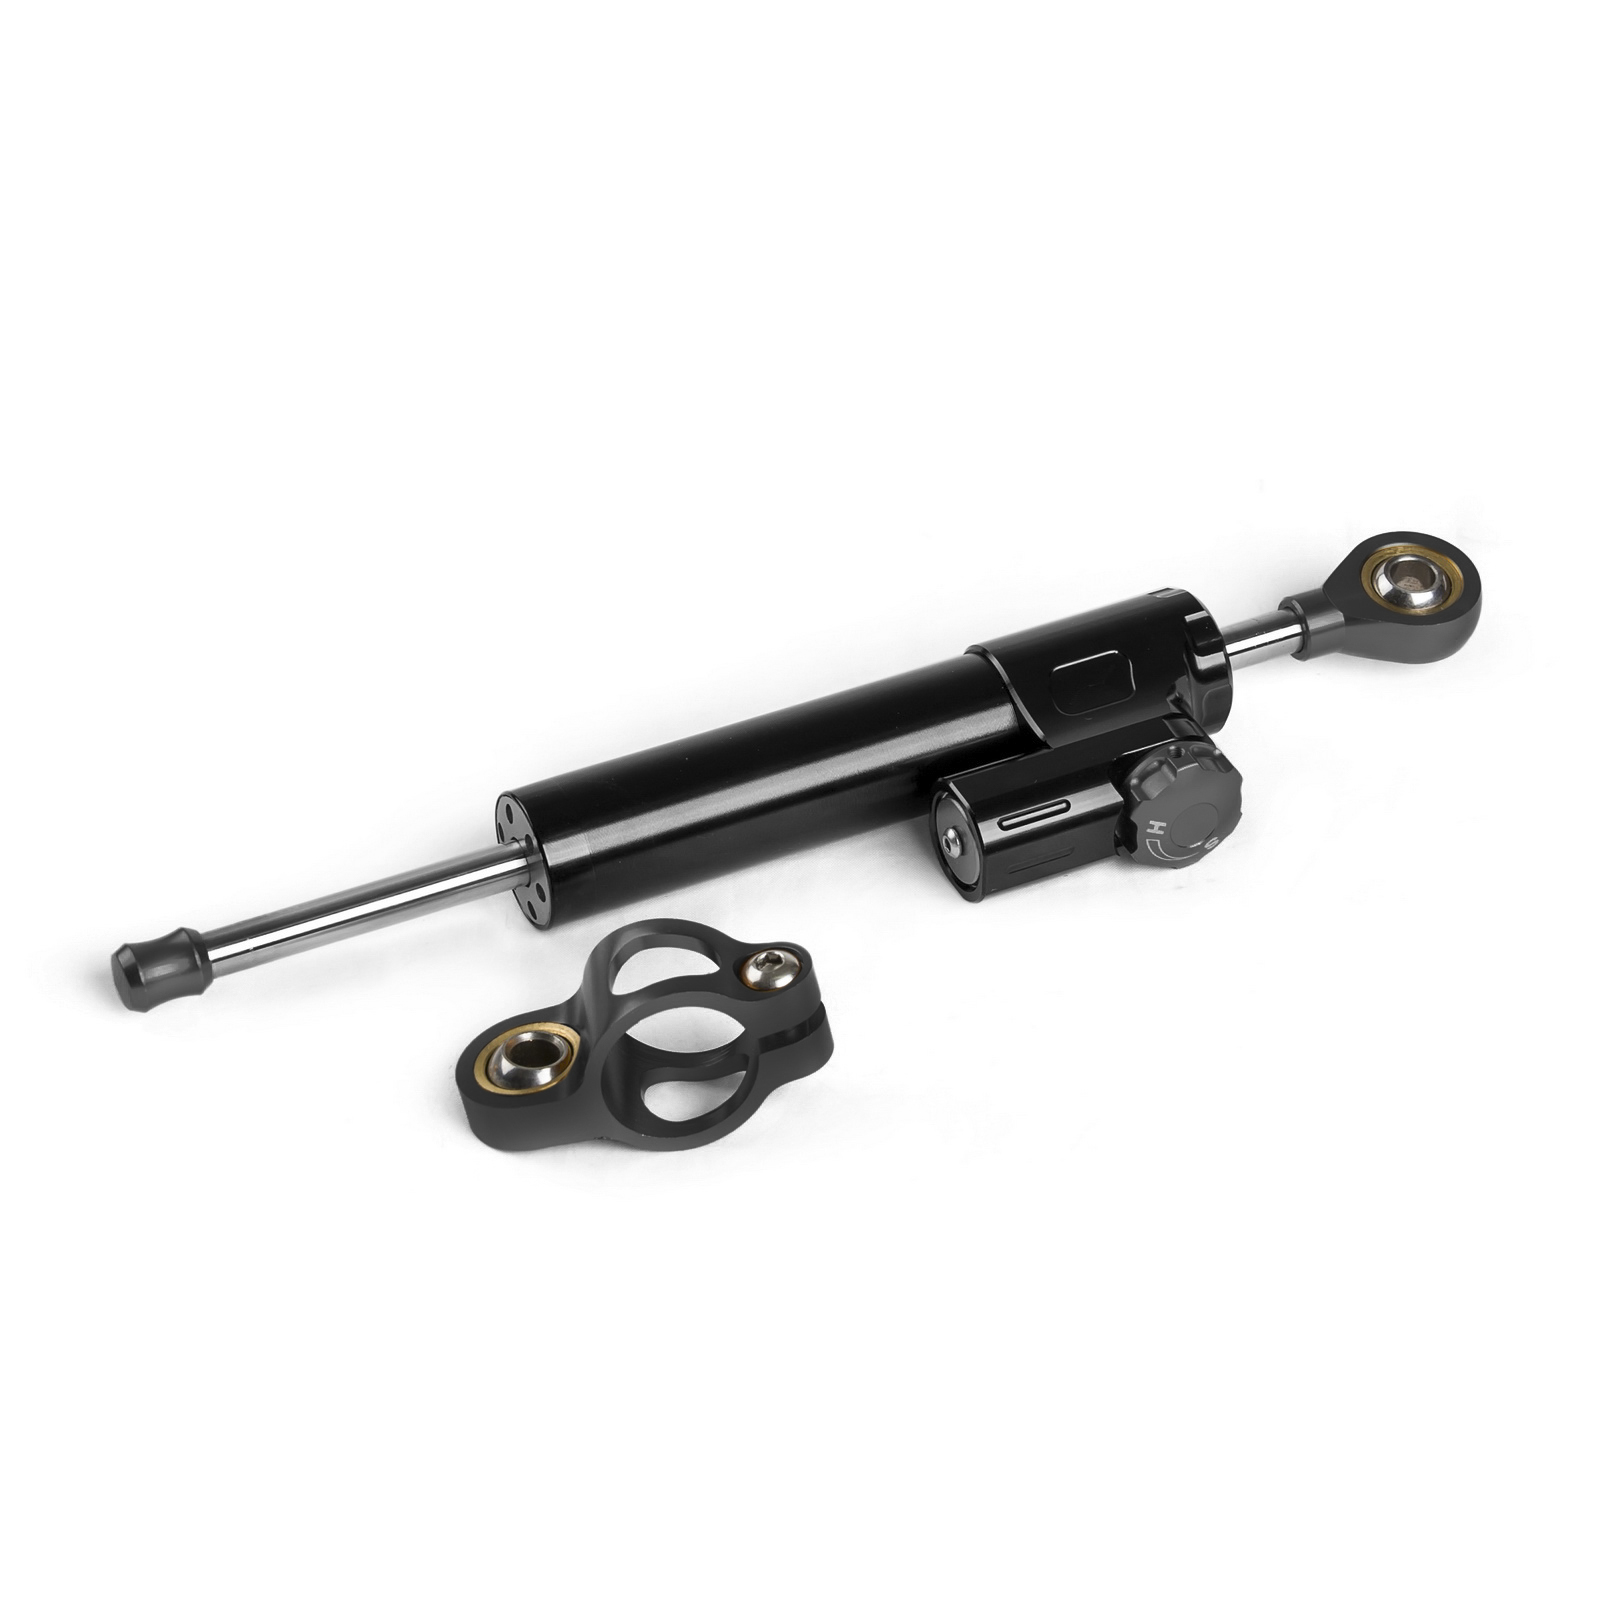 New Black CNC Billet Universal Motorcycle Adjustable Steering Damper Stabilizer For Yamaha Honda Suzuki Kawasaki and so on